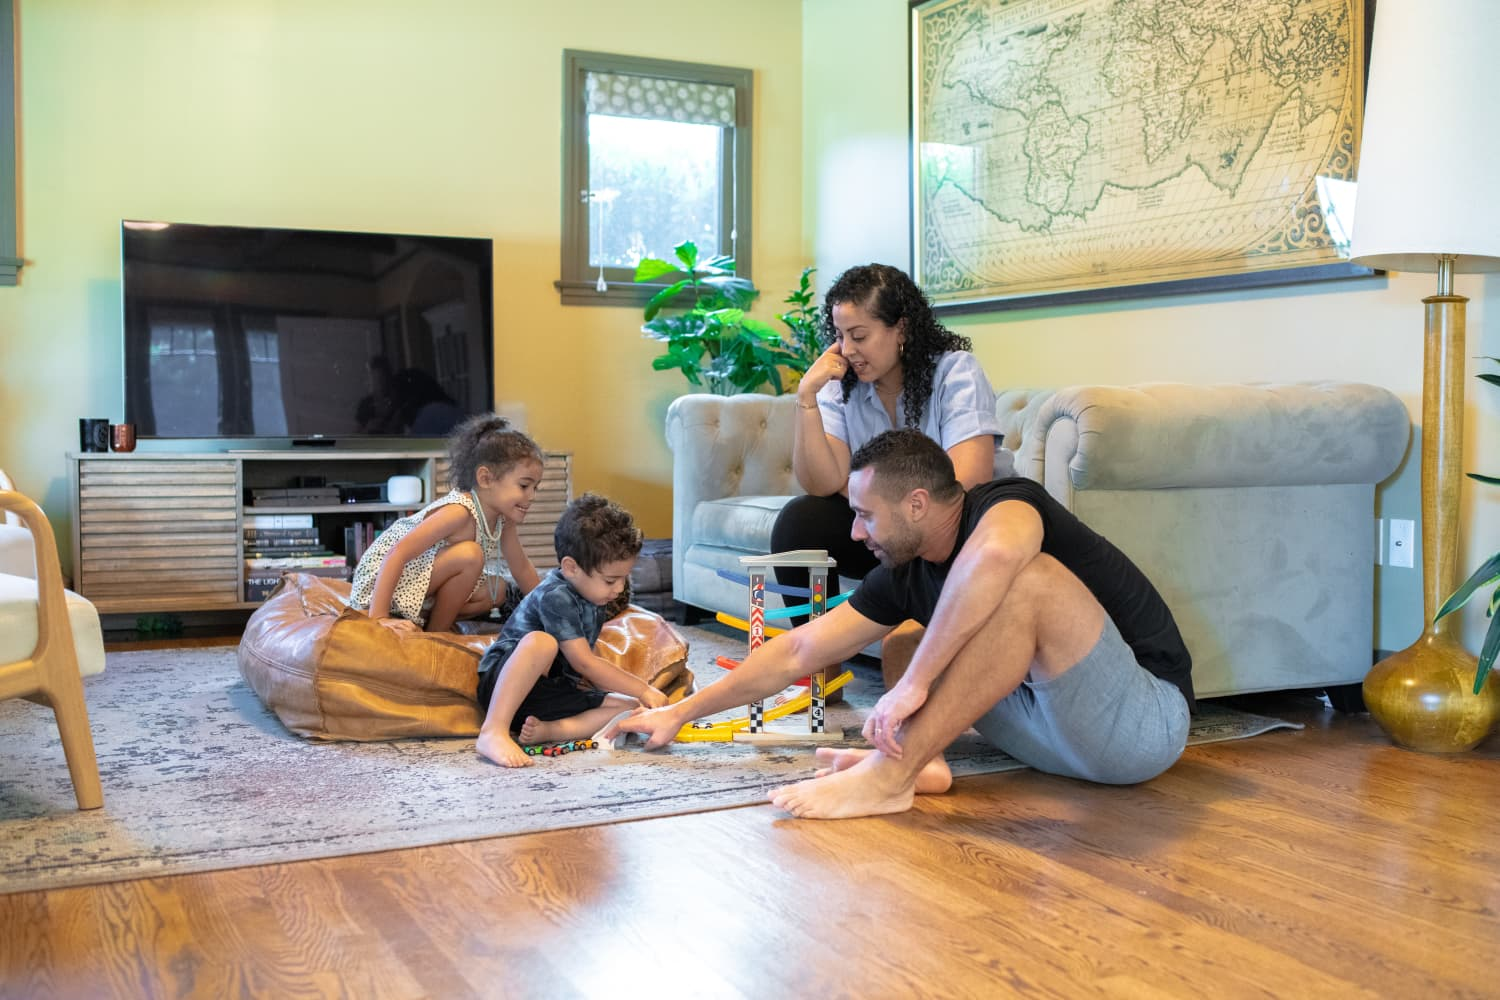 My Healthy Home: An Epidemiologist and Her Family Made a Temporary Home in a 1,600-Square-Foot Craftsman Bungalow